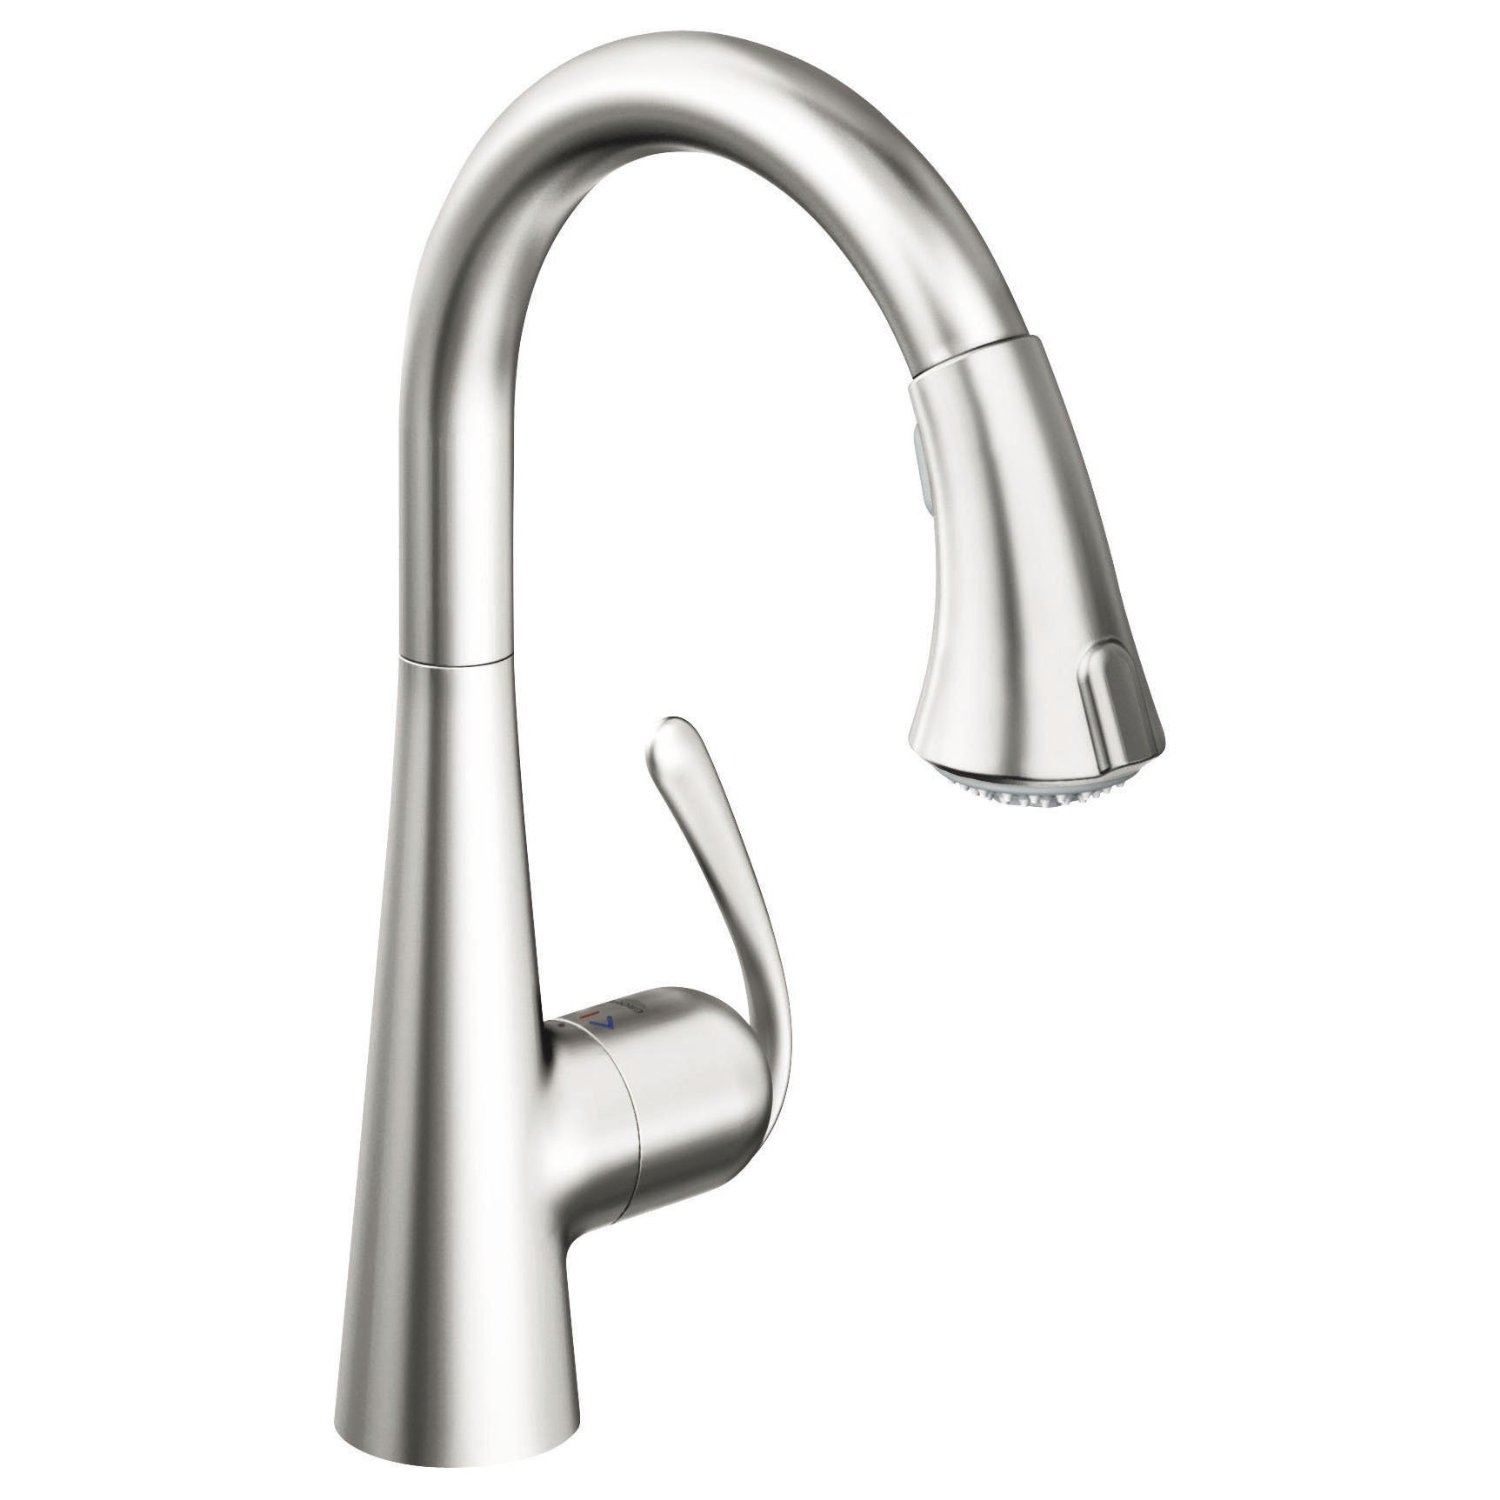 Ideas, grohe kitchen faucet pull out hose grohe kitchen faucet pull out hose decor fabulous grohe faucets for contemporary kitchen decoration 1500 x 1500  .